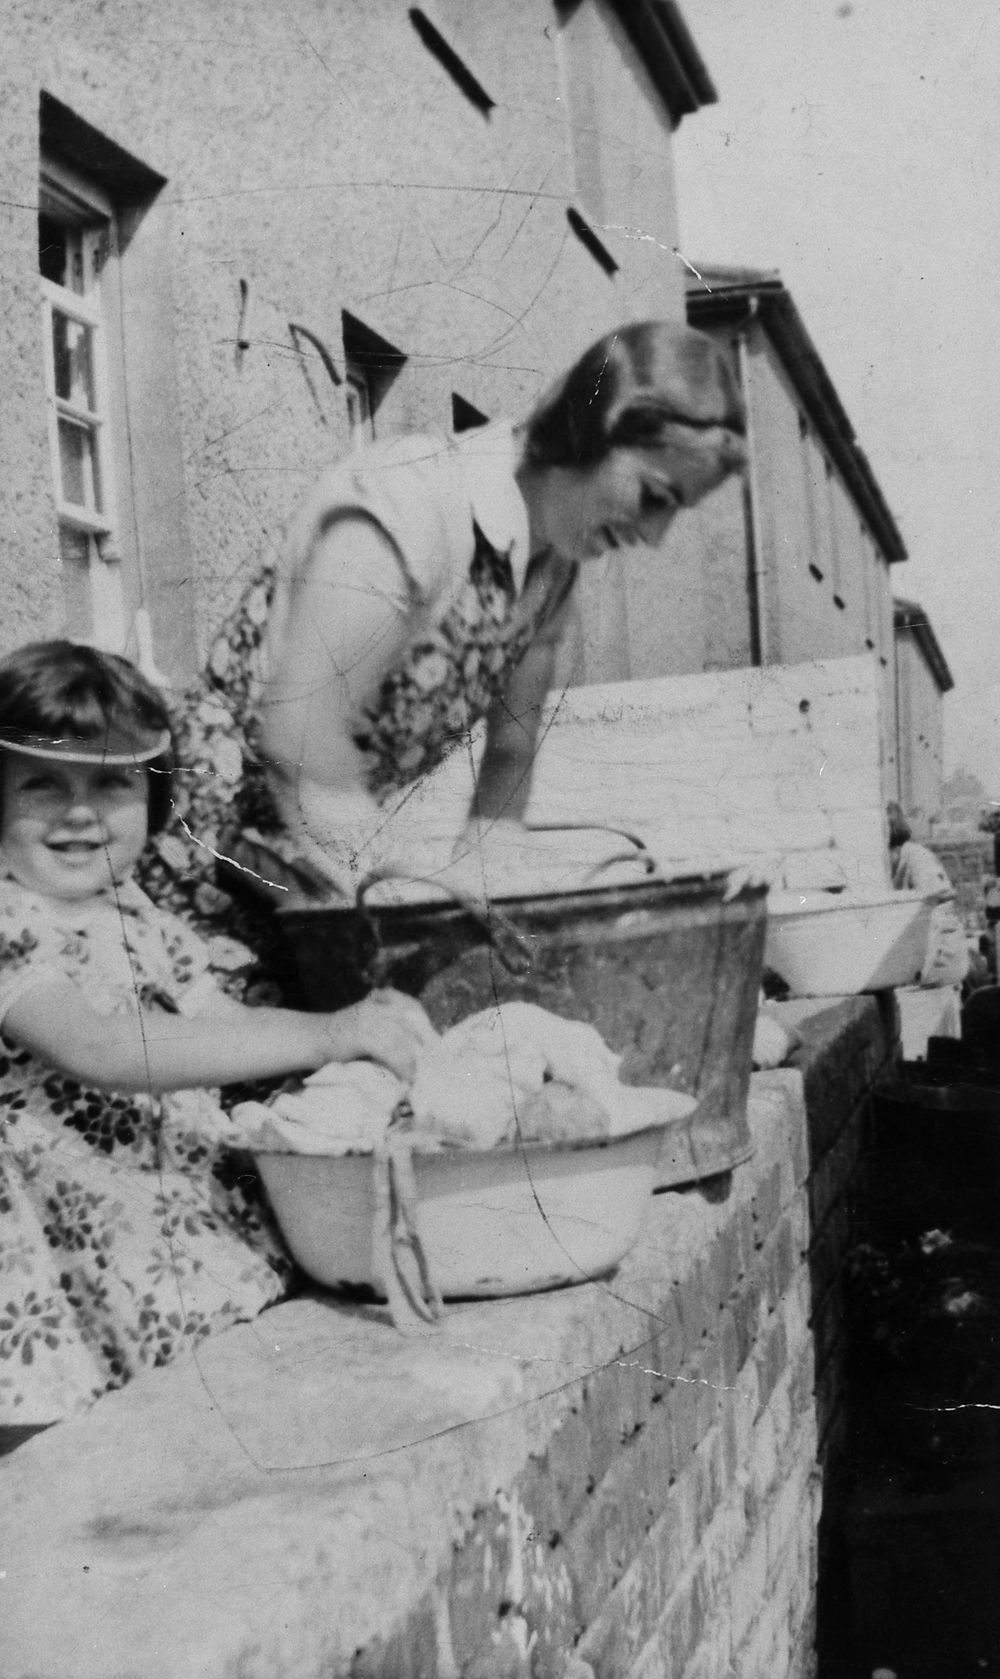 Image of woman and child washing clothes in a zinc bath on the garden wall at Pyle, Mid Glamorgan, 1930s.